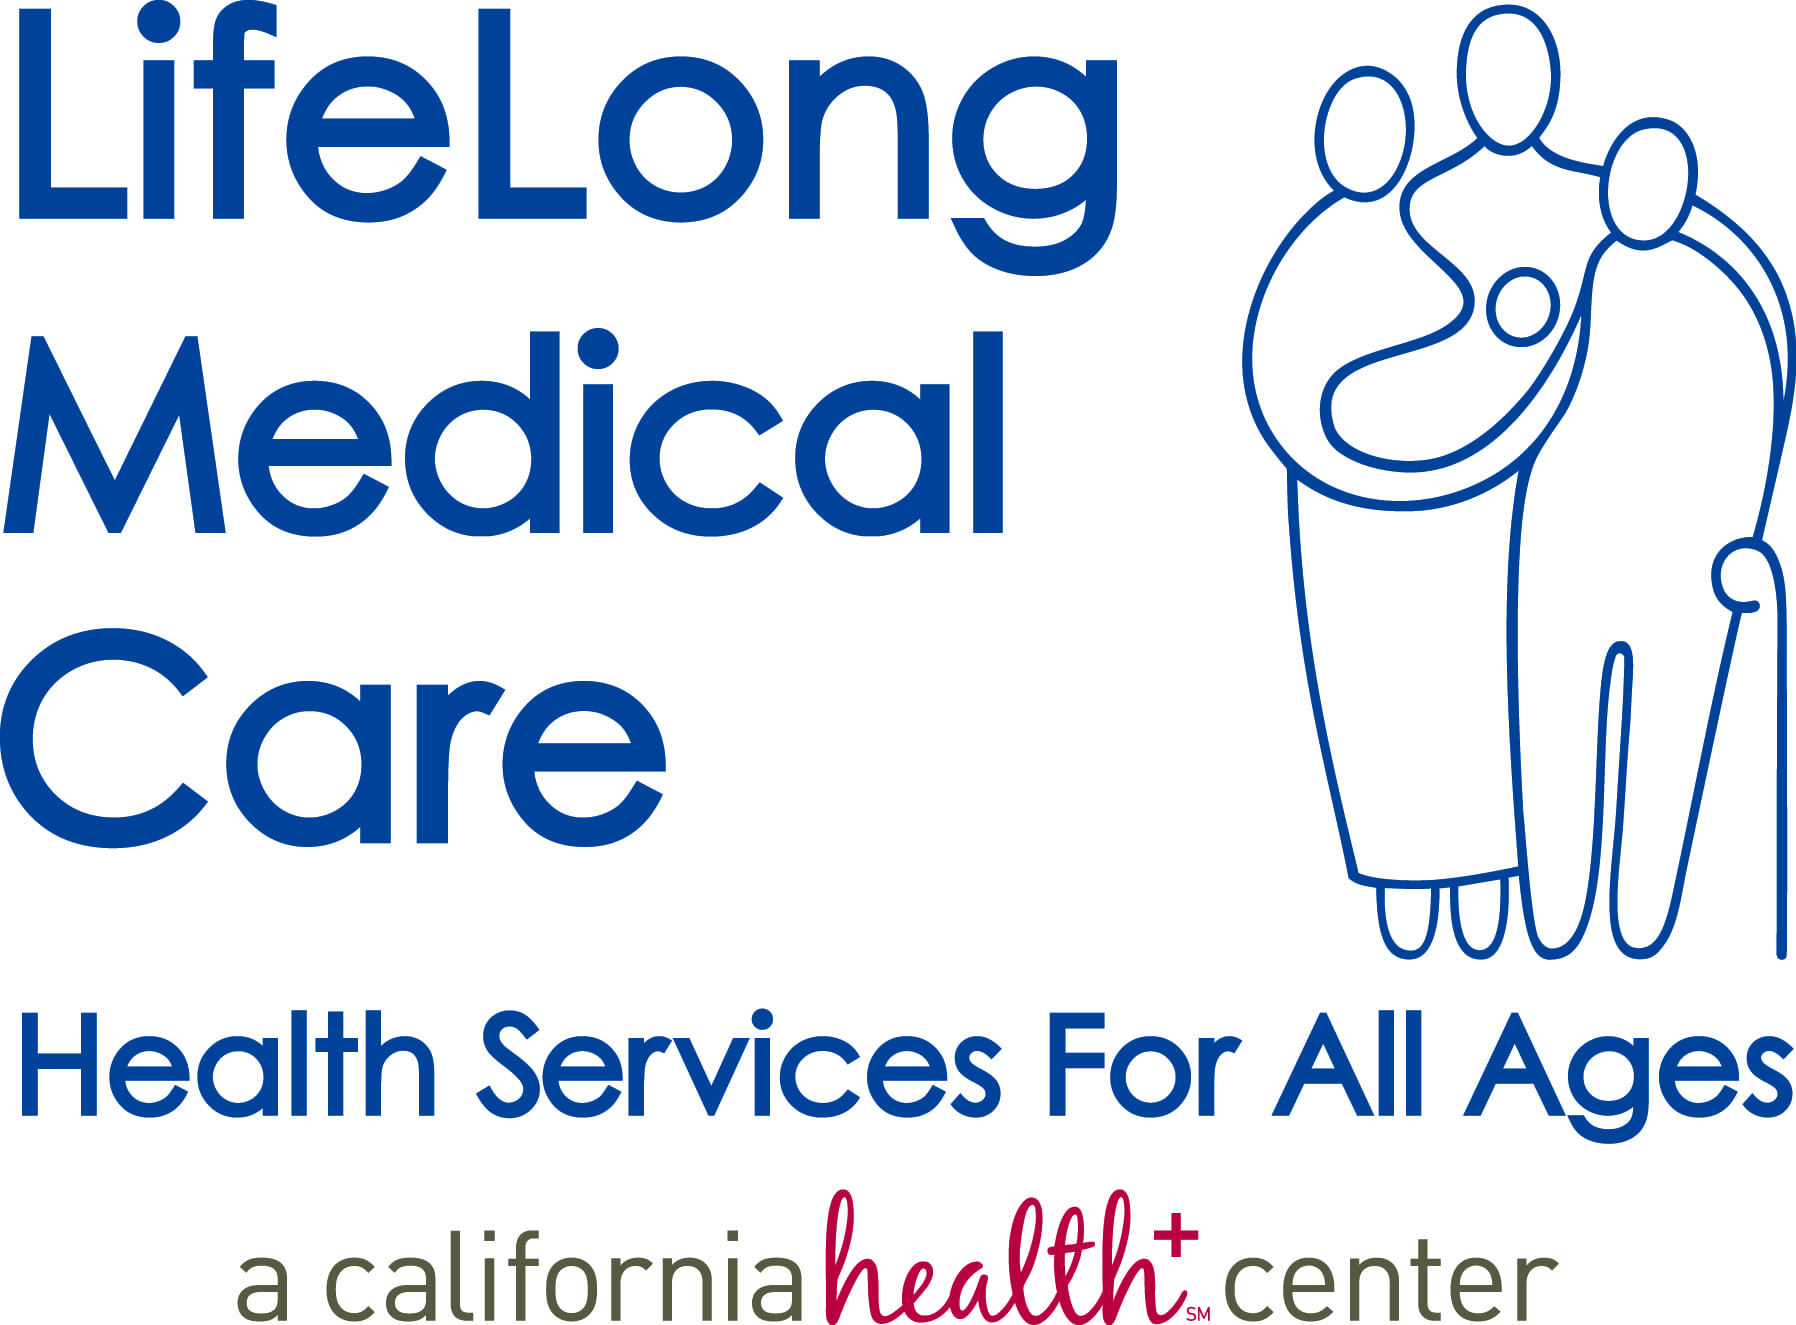 LifeLong Medical Care Immediate/Urgent Care Center in San Pablo